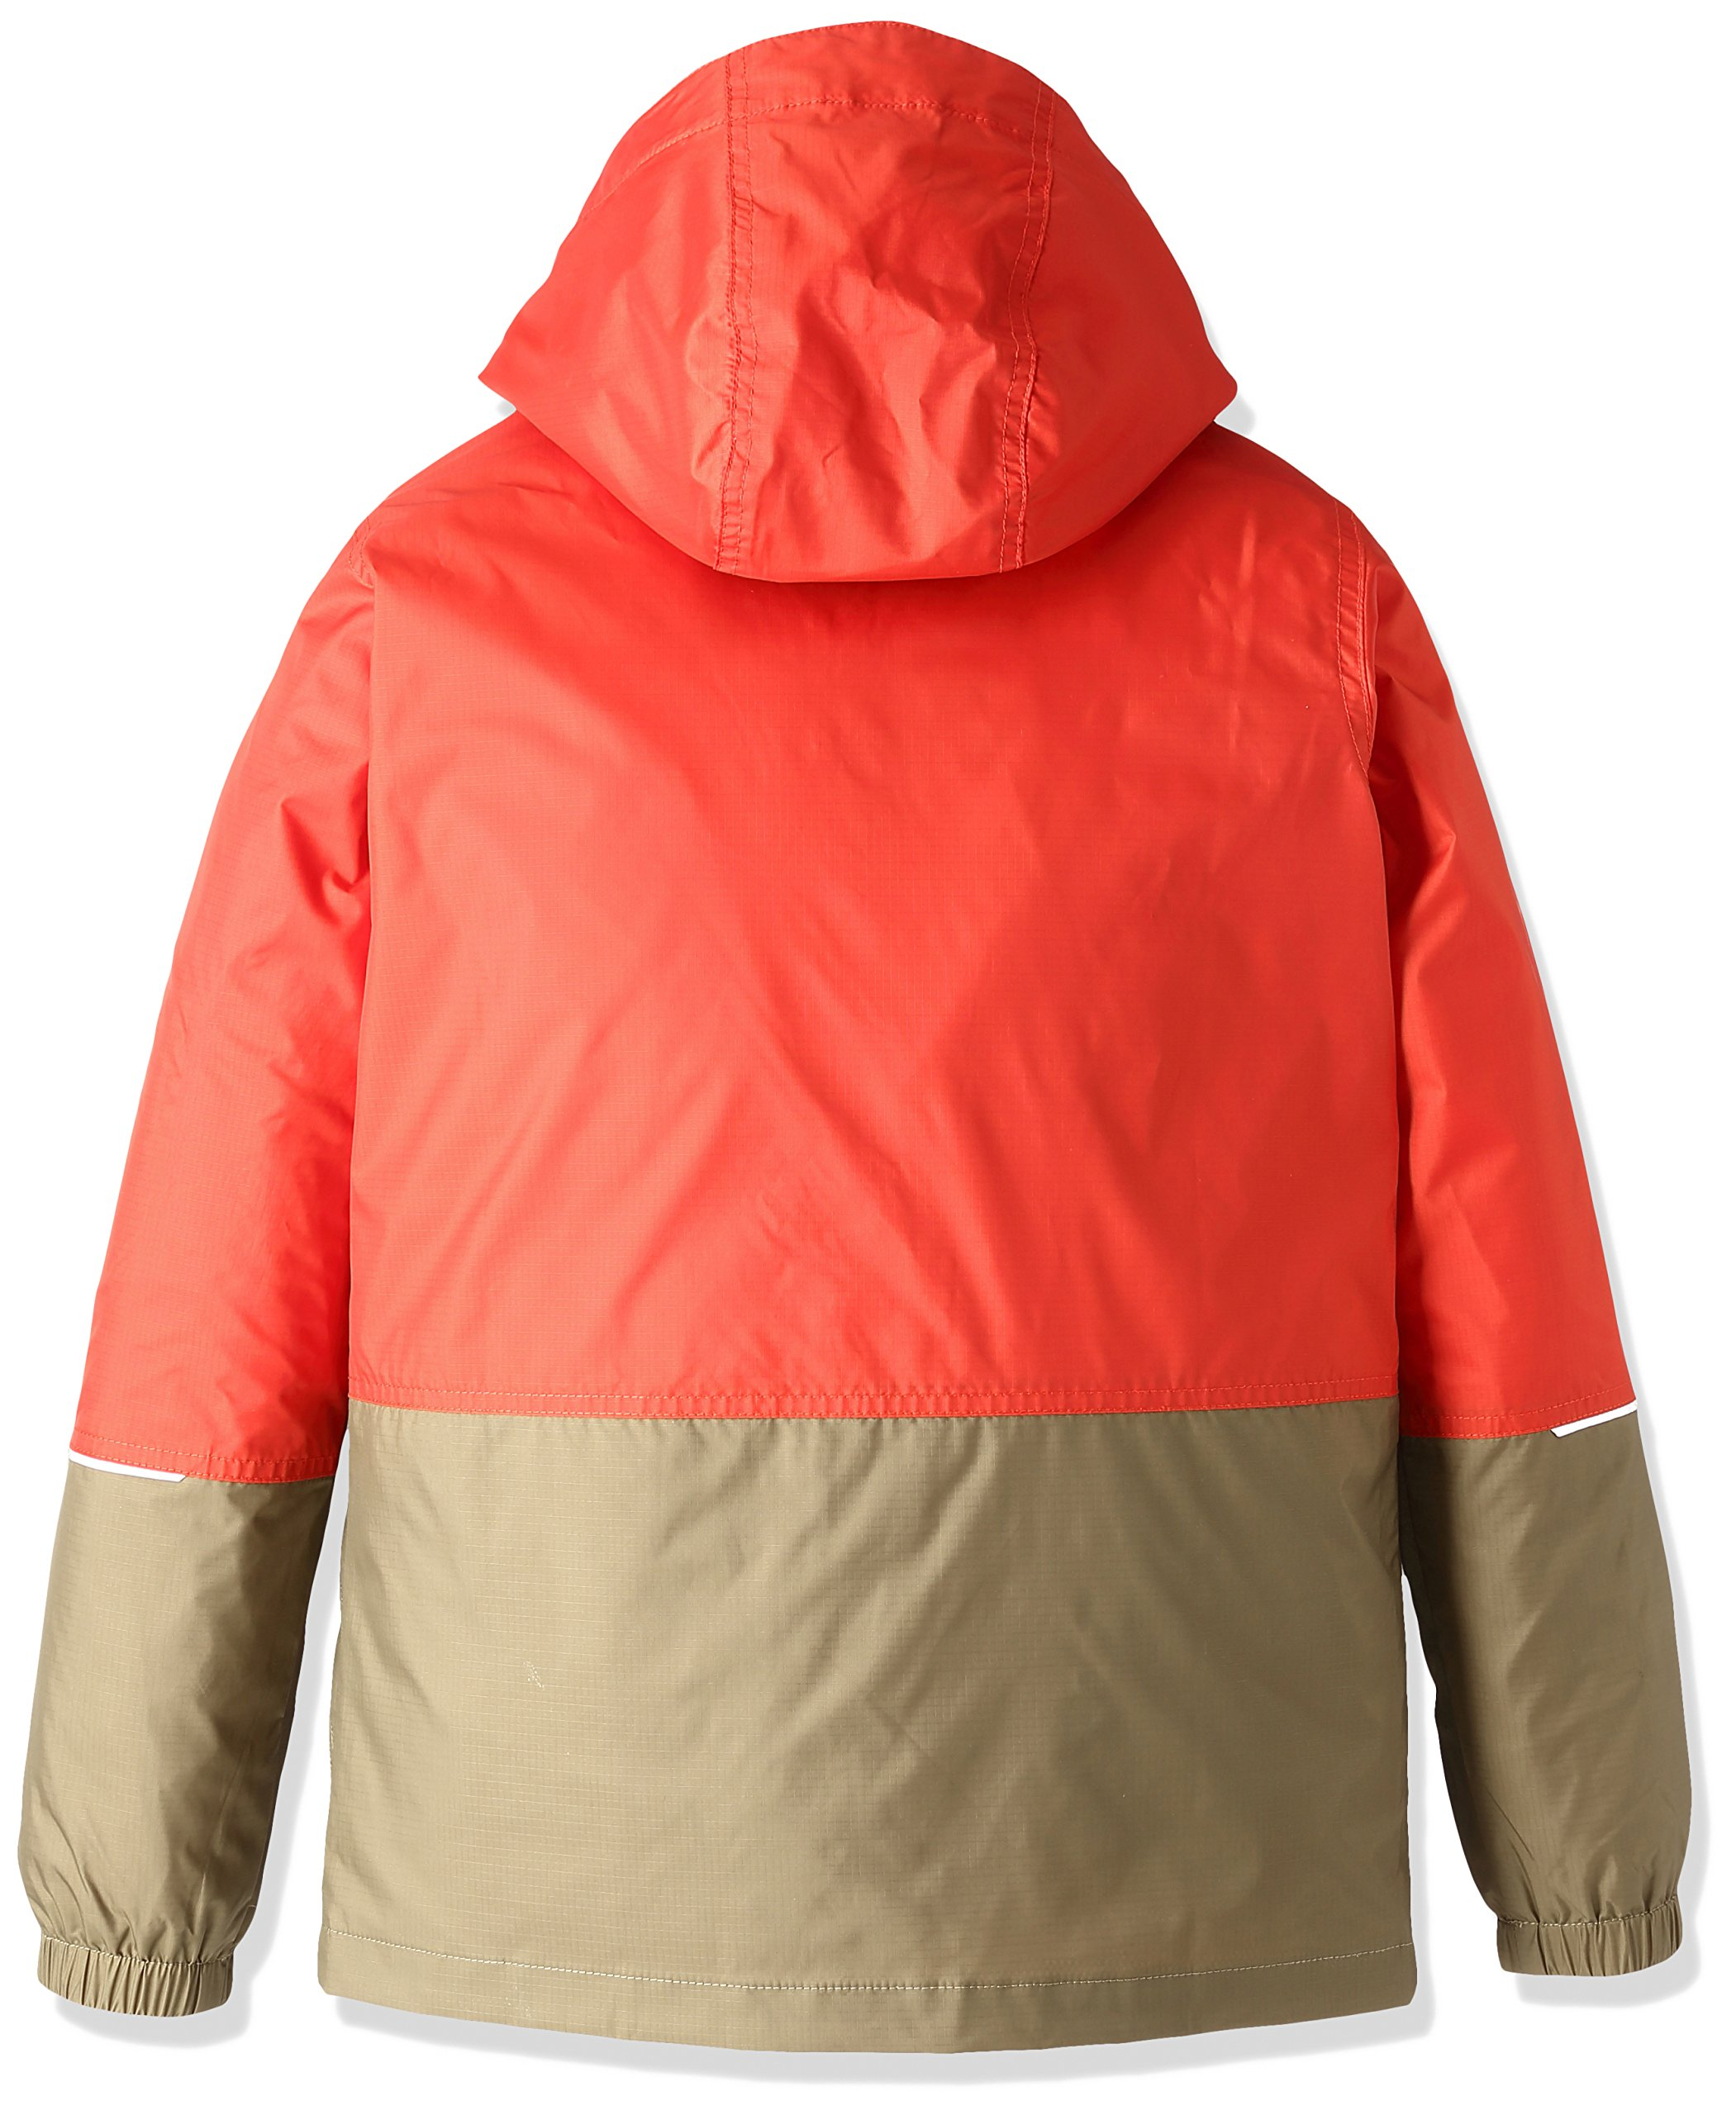 Columbia Big Boys' Hot On The Trail Rain Jacket, Super Sonic/Delta, Small by Columbia (Image #2)